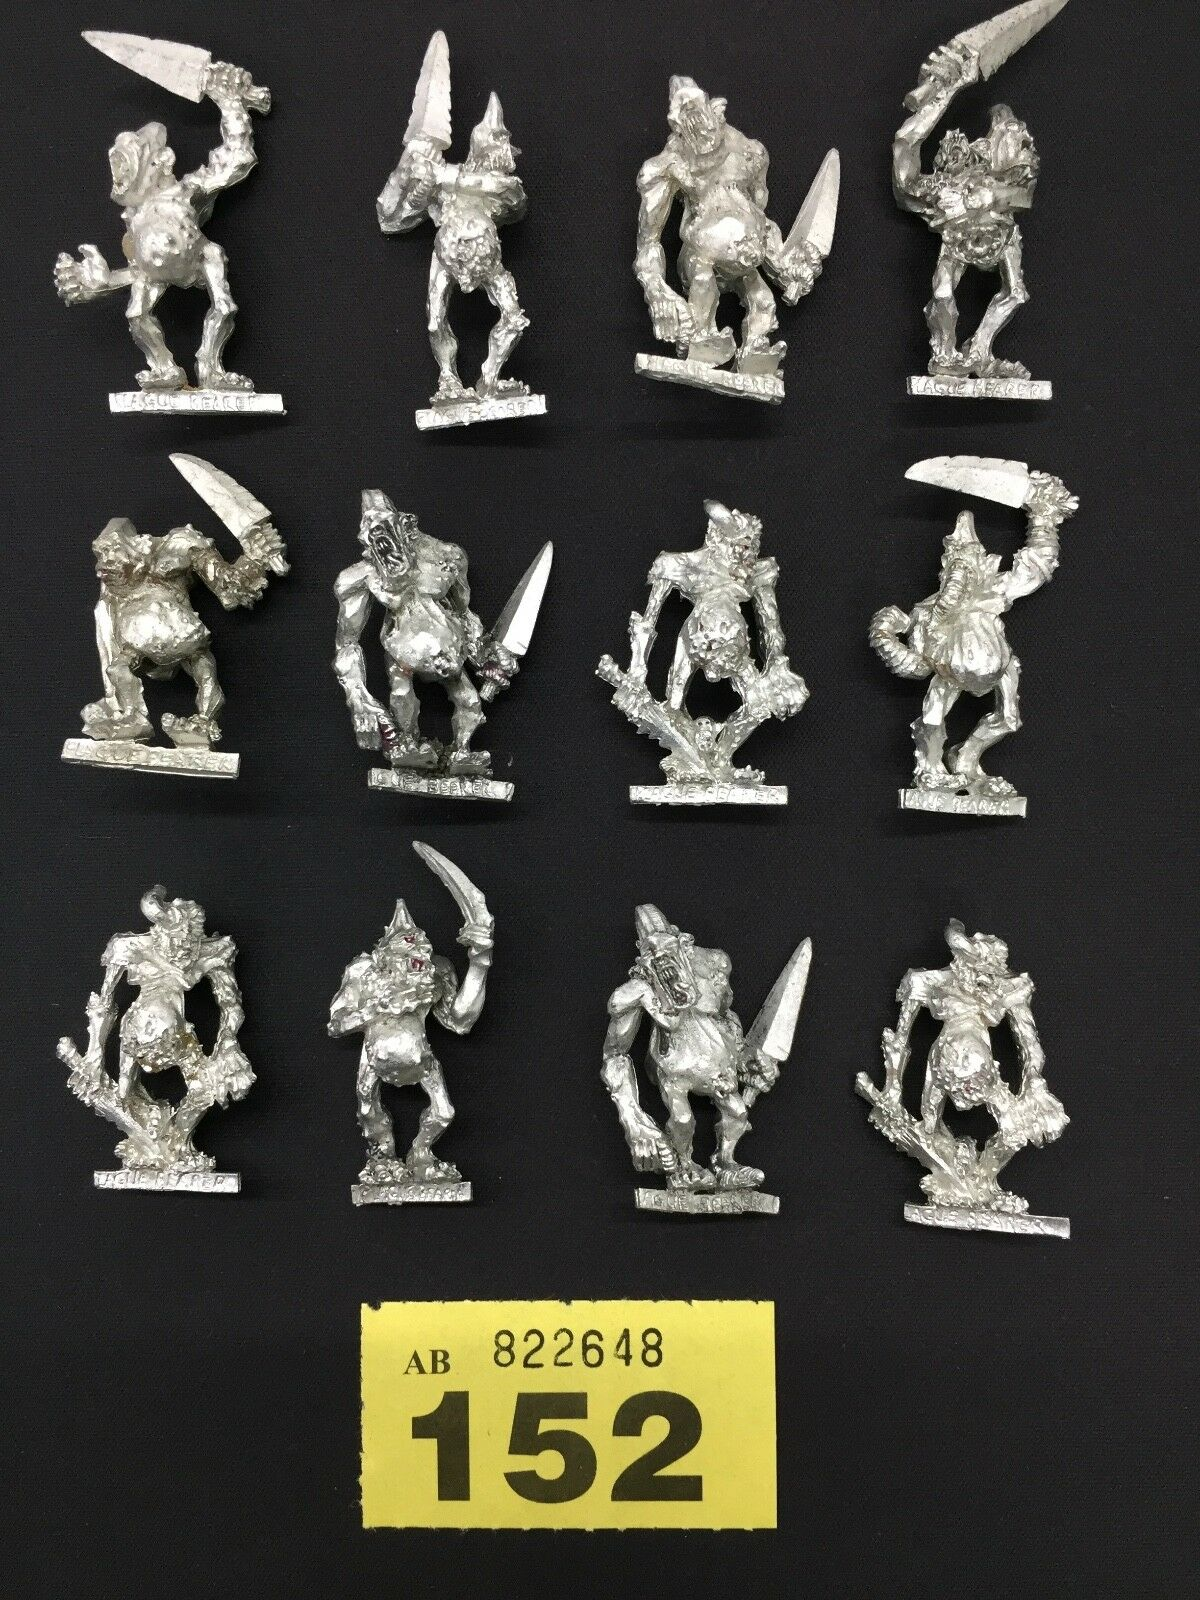 WARHAMMER AGE OF SIGMAR CHAOS REALM OF CHAOS PLAGUEBEARERS OF NURGLE 2001 METAL